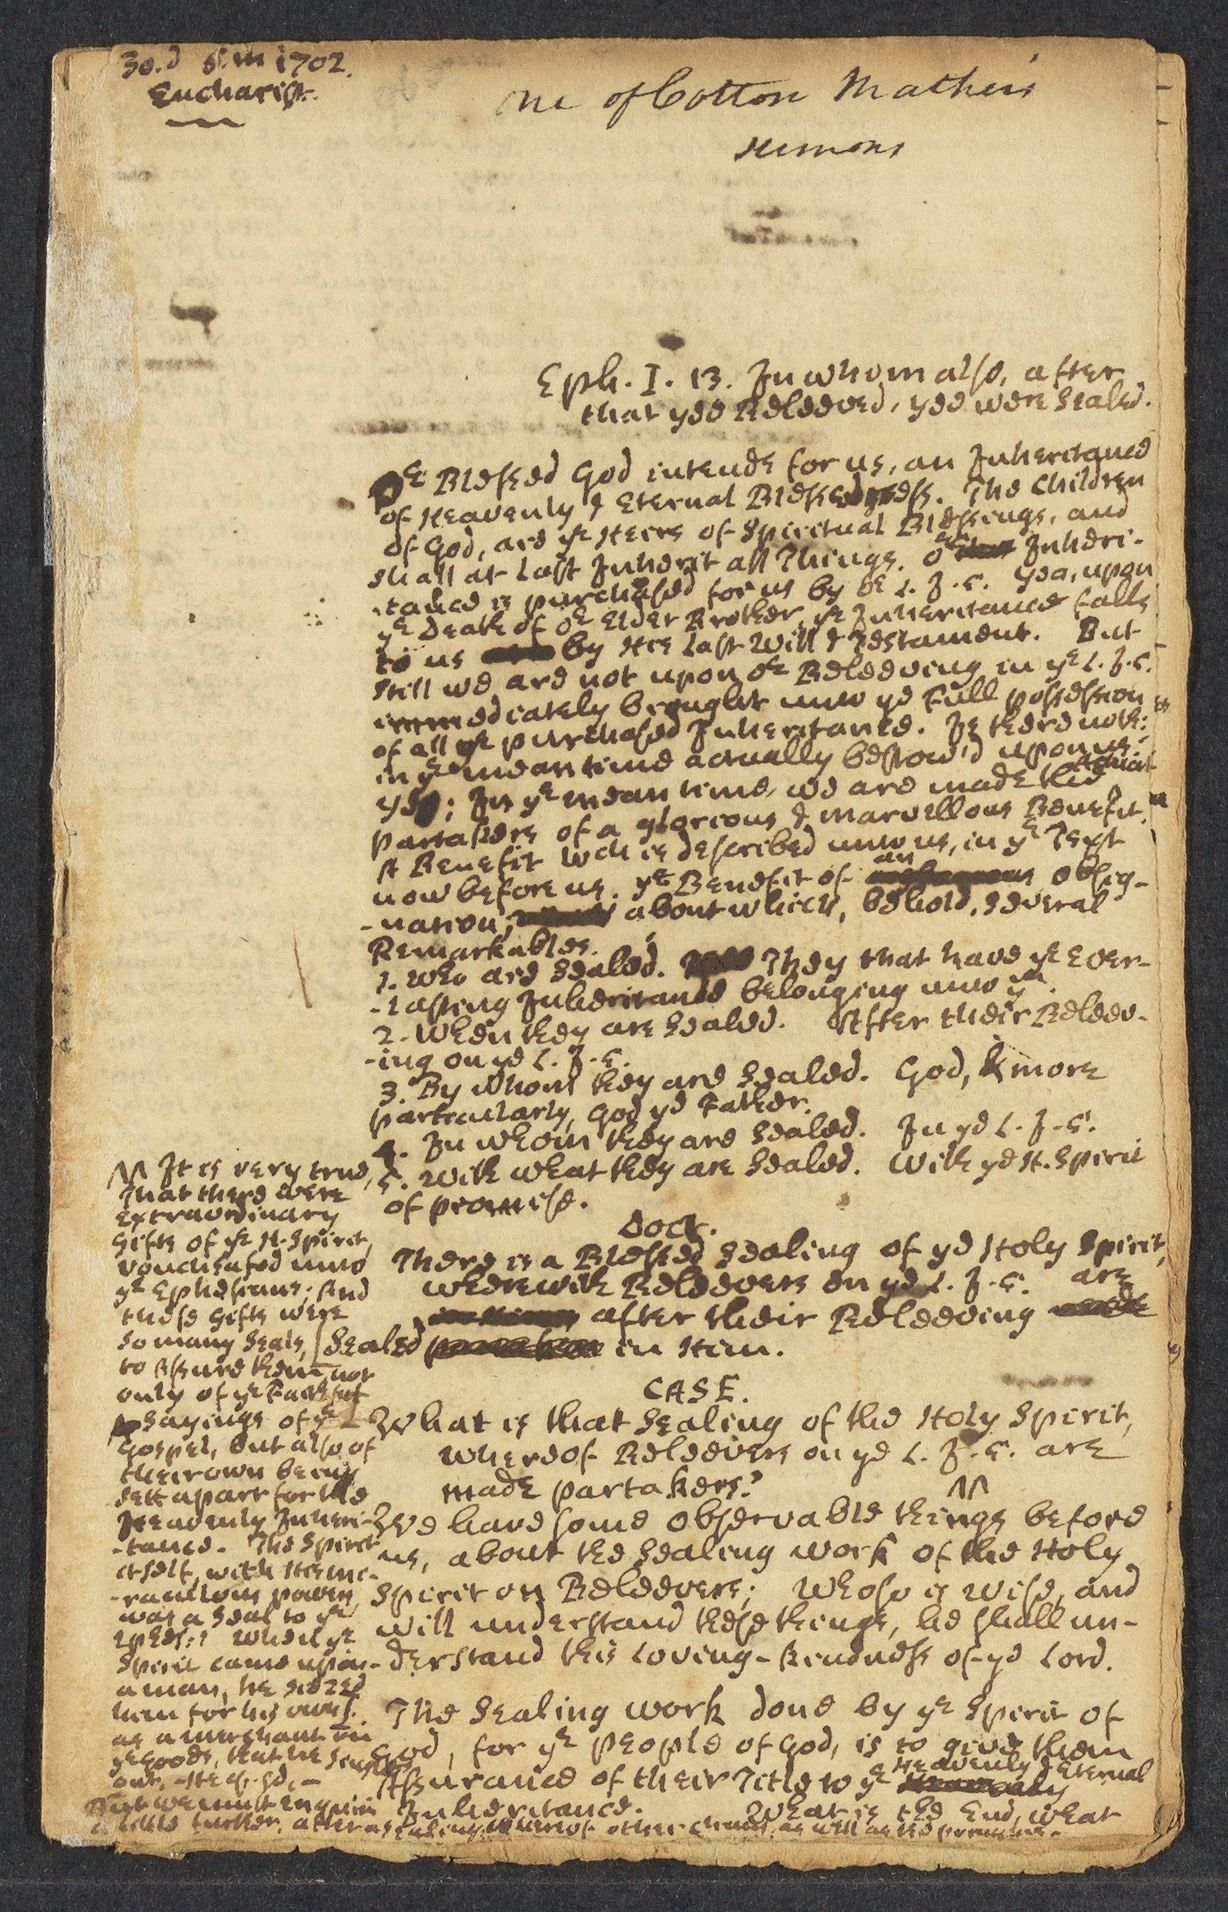 Mather, Cotton, 1663-1728. Eph.I.13 [Sermon on the healing work of the Holy Spirit]. A.MS. with annotation in an unidentified hand; [n.p.] 30 May 1702.